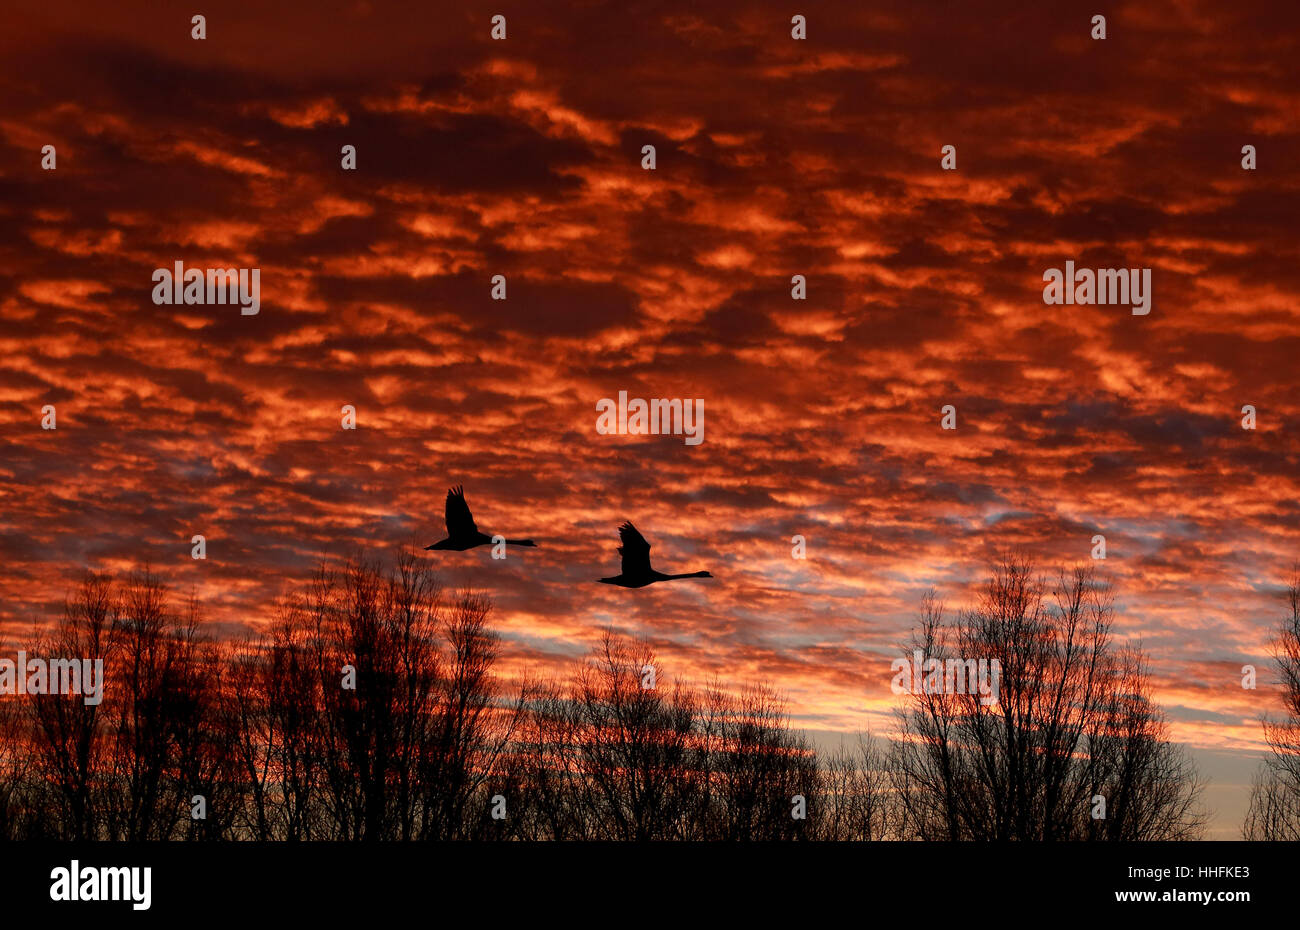 Peterborough, UK. 18th January 2017. The sky looked on fire this morning as two swans take flight just before sunrise - Stock Image